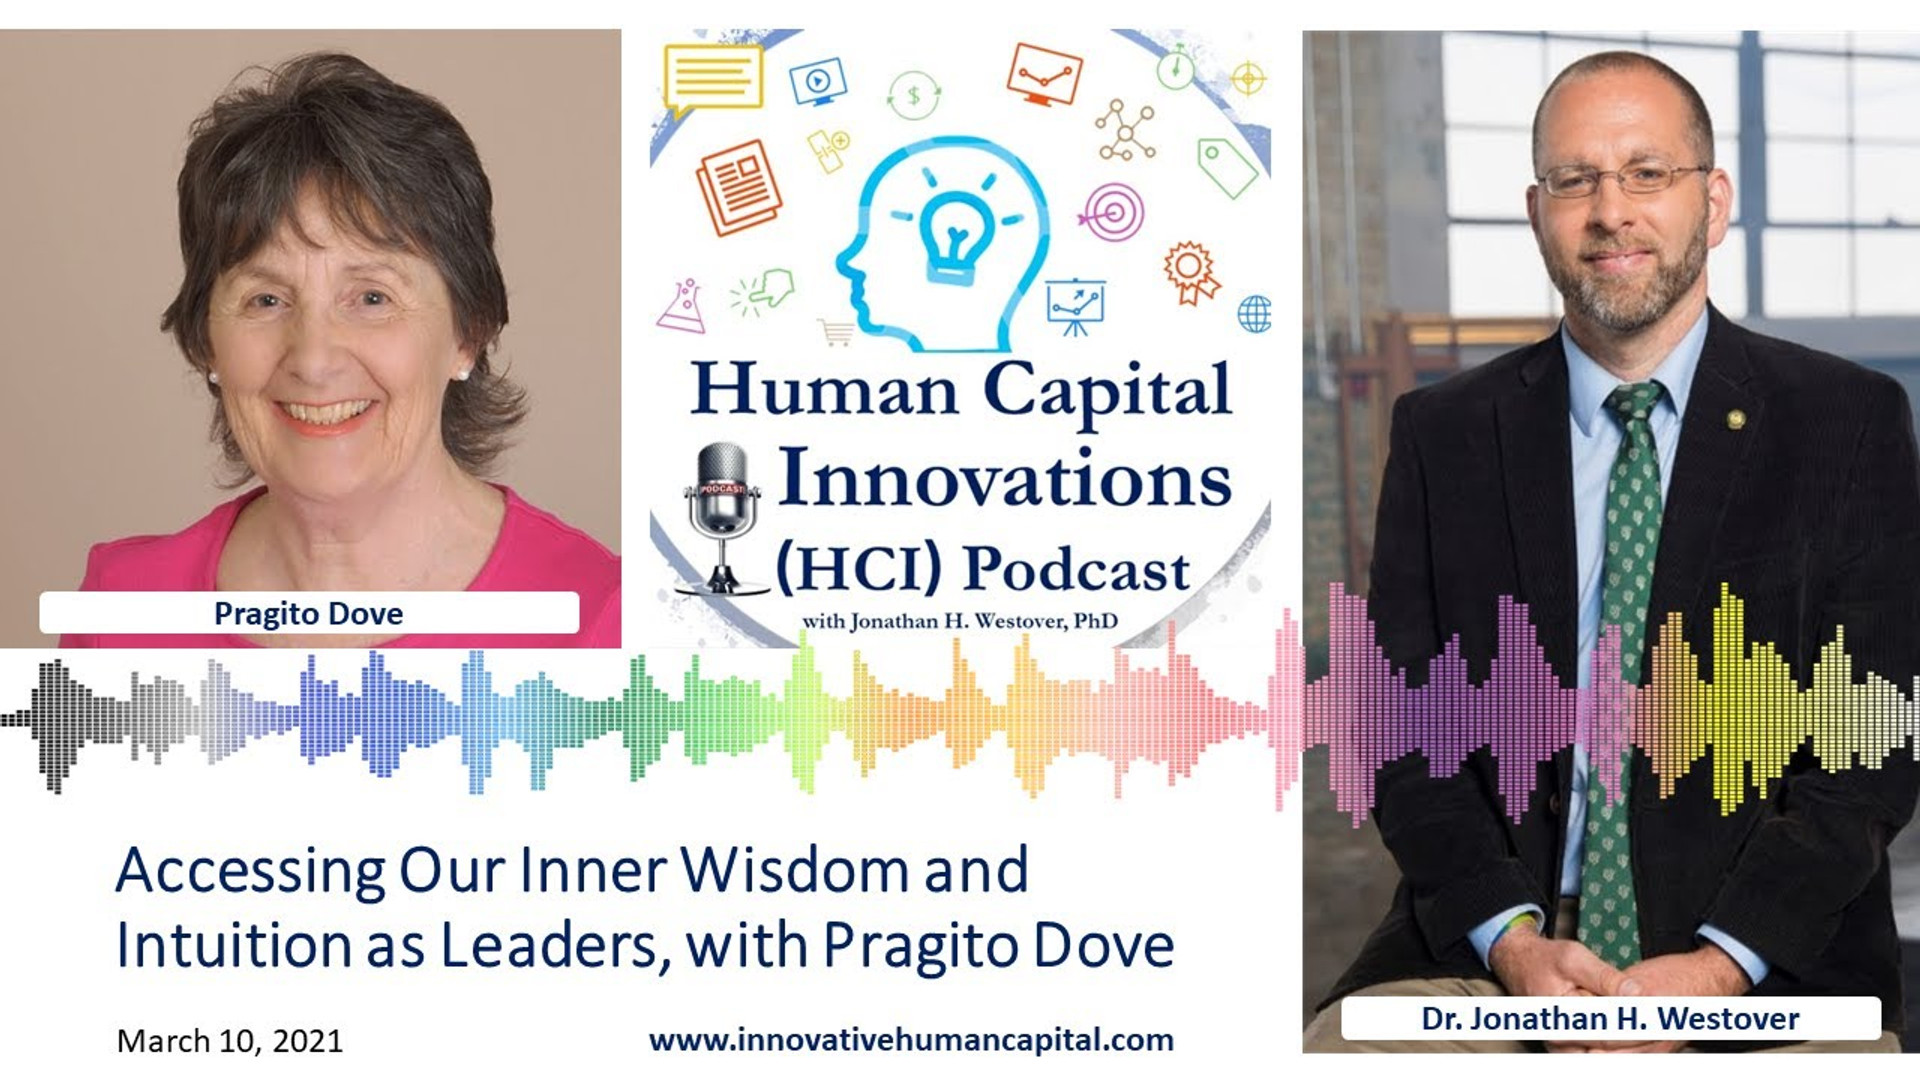 HCI Webinar: Accessing Our Inner Wisdom and Intuition as Leaders, with Pragito Dove